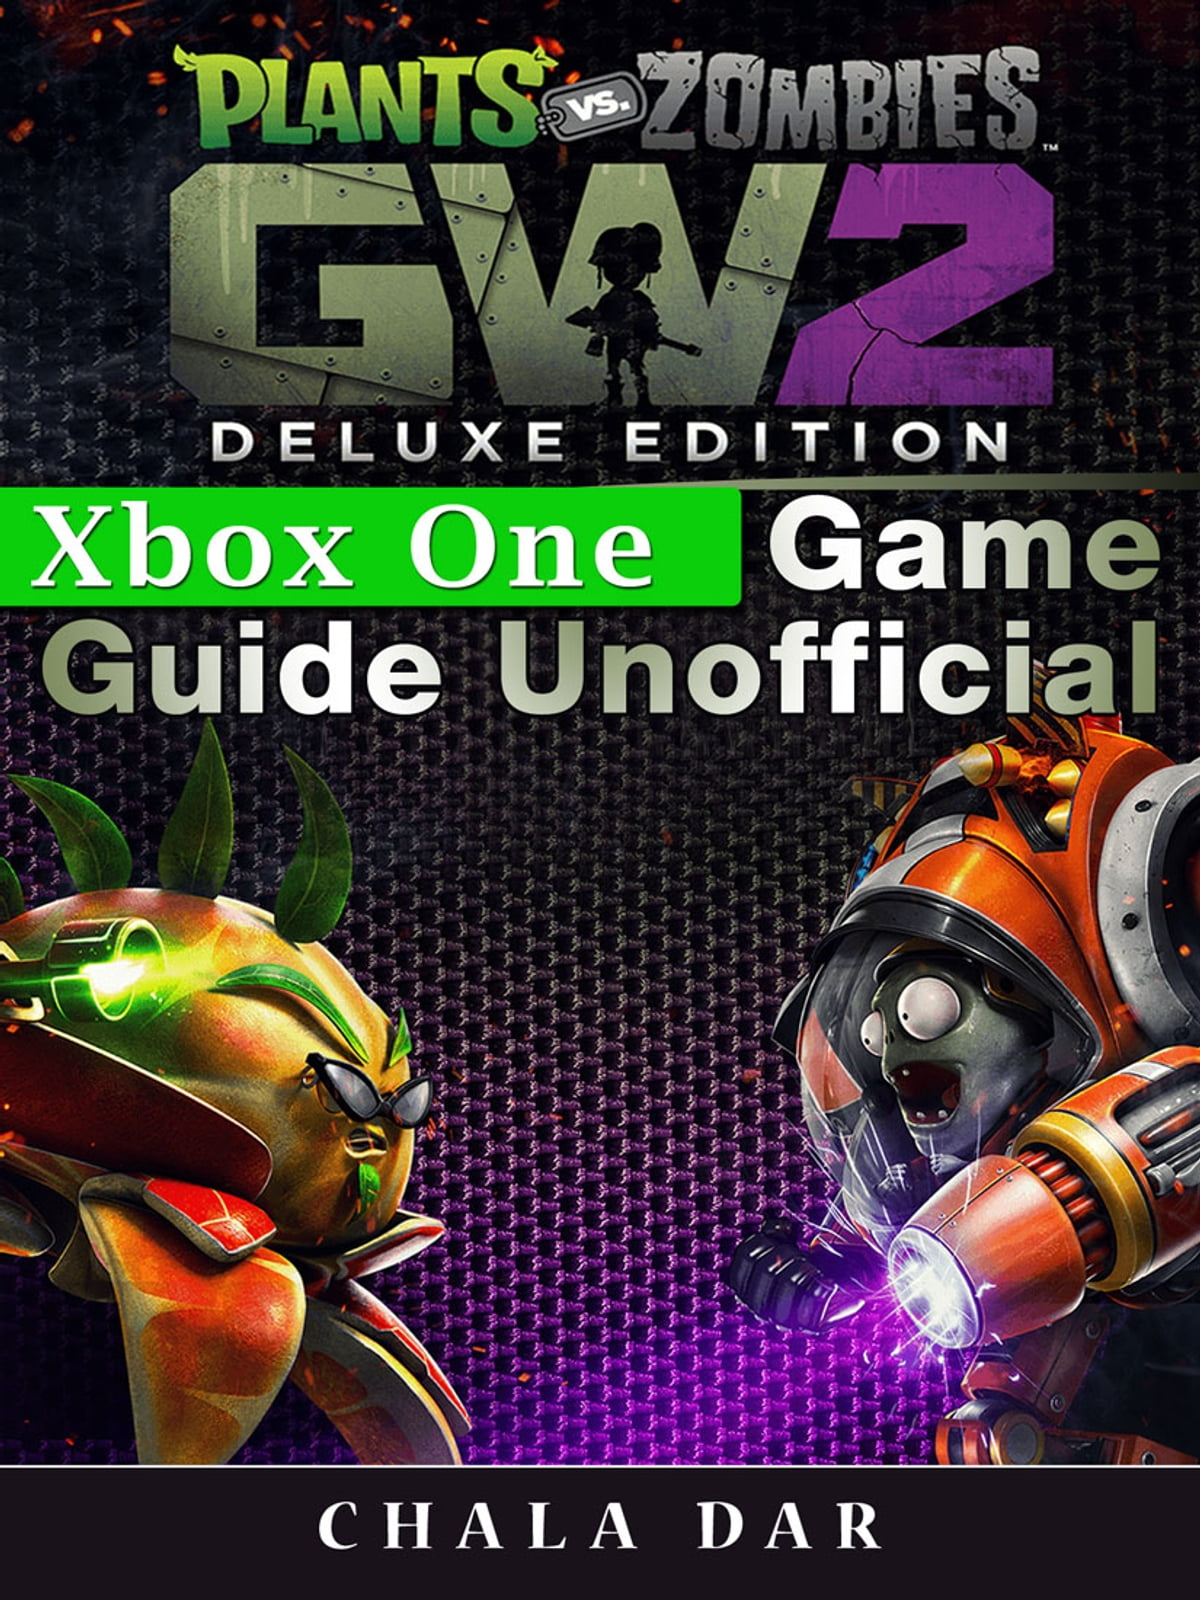 Plants Vs Zombies Garden Warfare 2 Deluxe Edition Xbox One Game Injustice Ps4 Guide Unofficial Ebook By Chala Dar 9781387242450 Rakuten Kobo